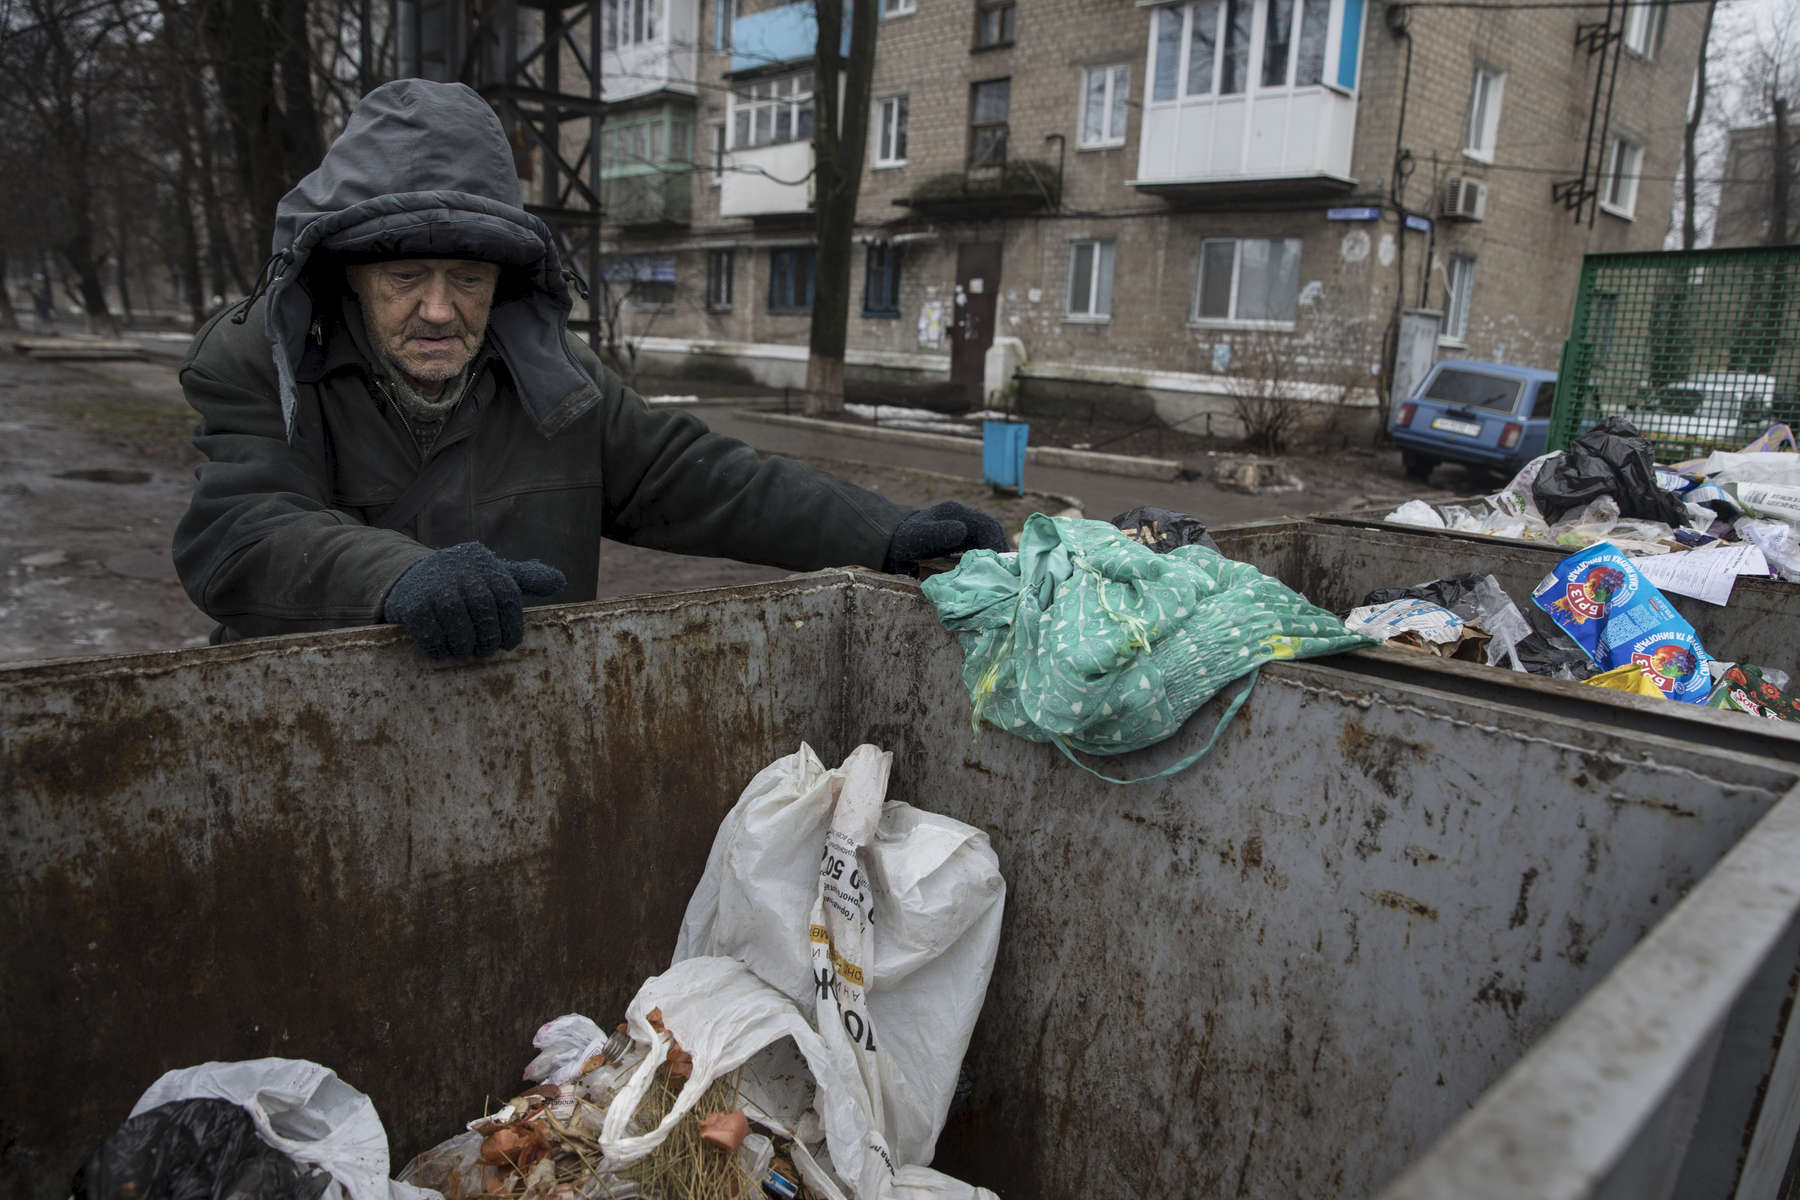 Avdiivka, Eastern Ukraine: Nikolay age 61, is homeless, his house was destroyed in old Avdiivka. He collects garbage for recycling to earn a few dollars and sleeps in a bunker underground in one of the apartment blocks in the city. He barely survives, has lost his passport, and has no money for medicine, unable to receive a pension after his documents were destroyed in the fire.  Over the winter he got frostbite in his feet causing an infection that won't go away, he suffers in constant pain. After more than four years of war the armed conflict in eastern Ukraine has a human toll that is staggering. The war has displaced more than 1.6 million with over 2,500 civilians killed and 9,000 injured. Some 200,000 people live under constant fear of shelling every day, with nearly a third of the 3.4 million people in need of humanitarian assistance over 60 years of age. Ukraine has the highest proportion of elderly affected by war in the world.